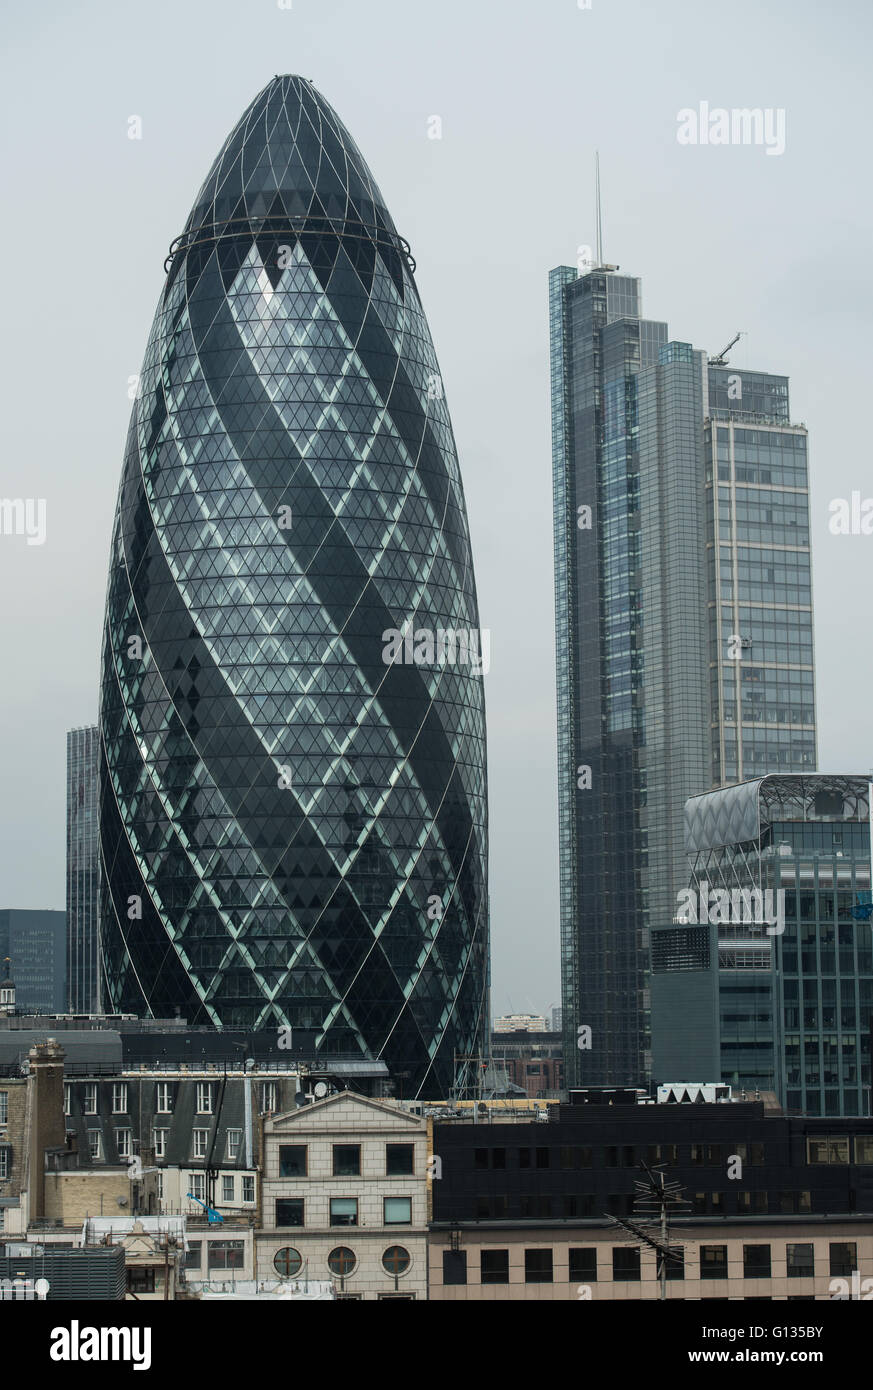 The Gherkin and Heron Tower, City of London - Stock Image